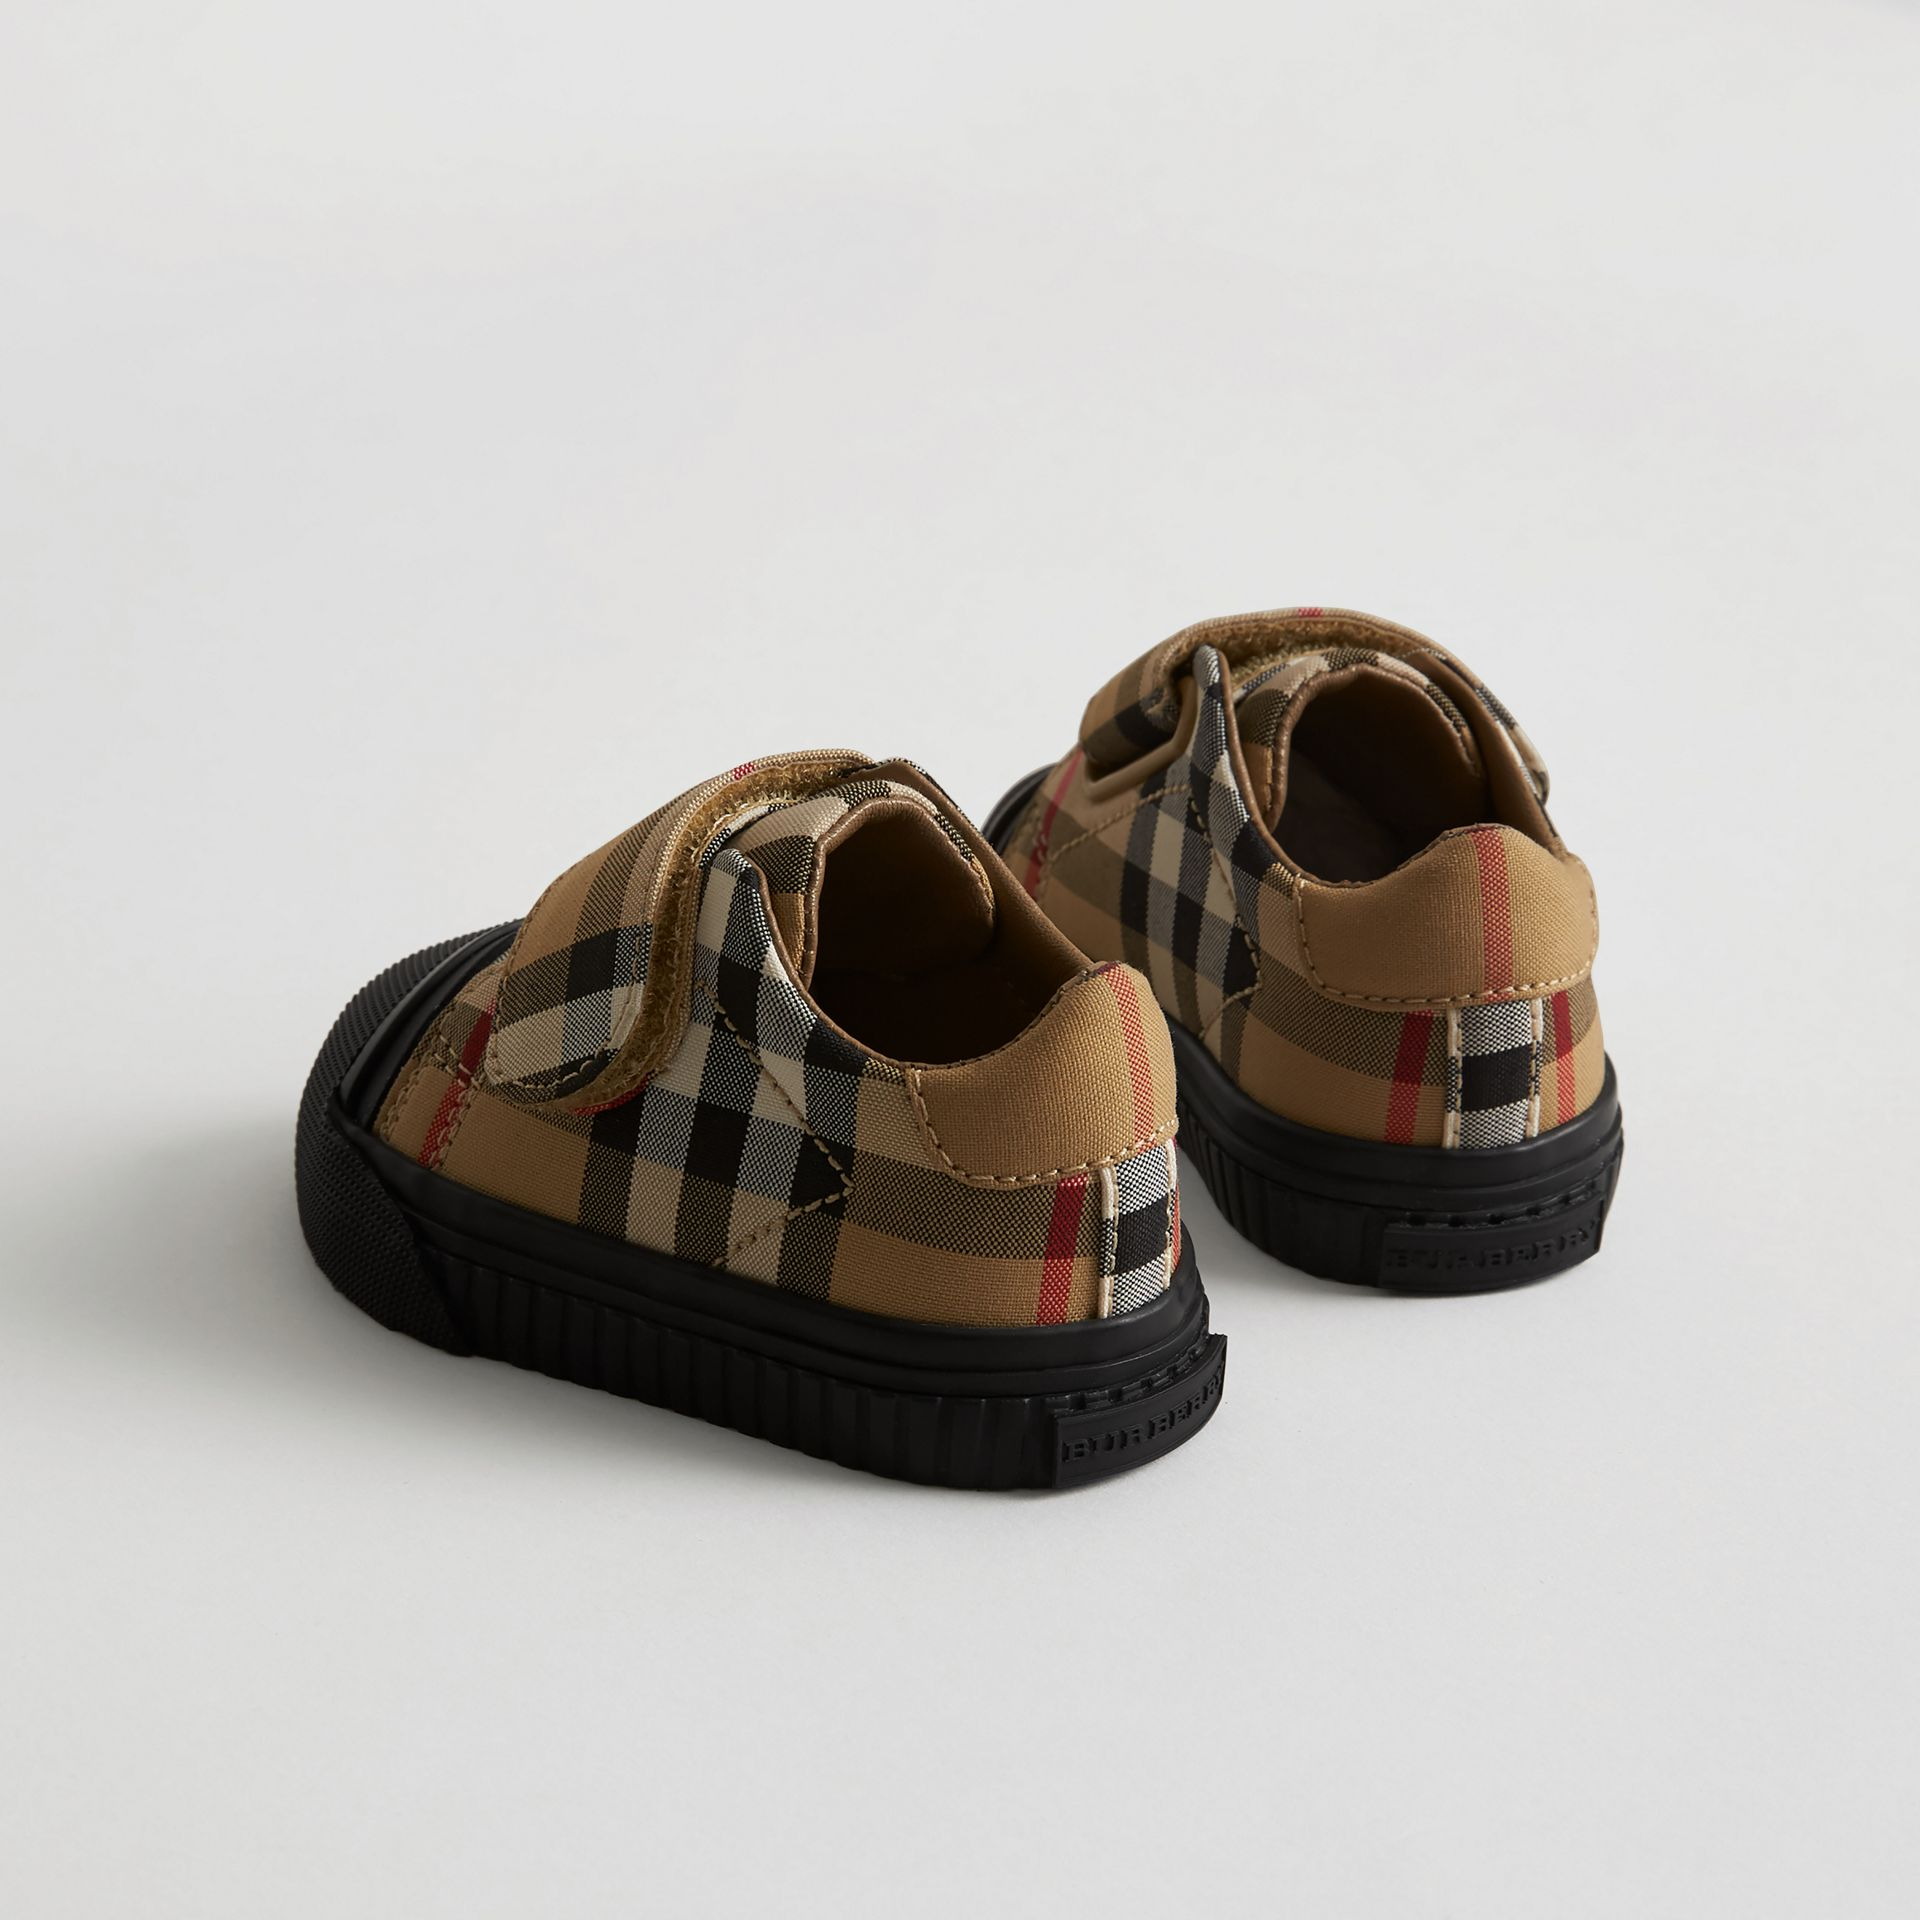 Sneakers en cuir à motif Vintage check (Jaune Antique/noir) - Enfant | Burberry Canada - photo de la galerie 2